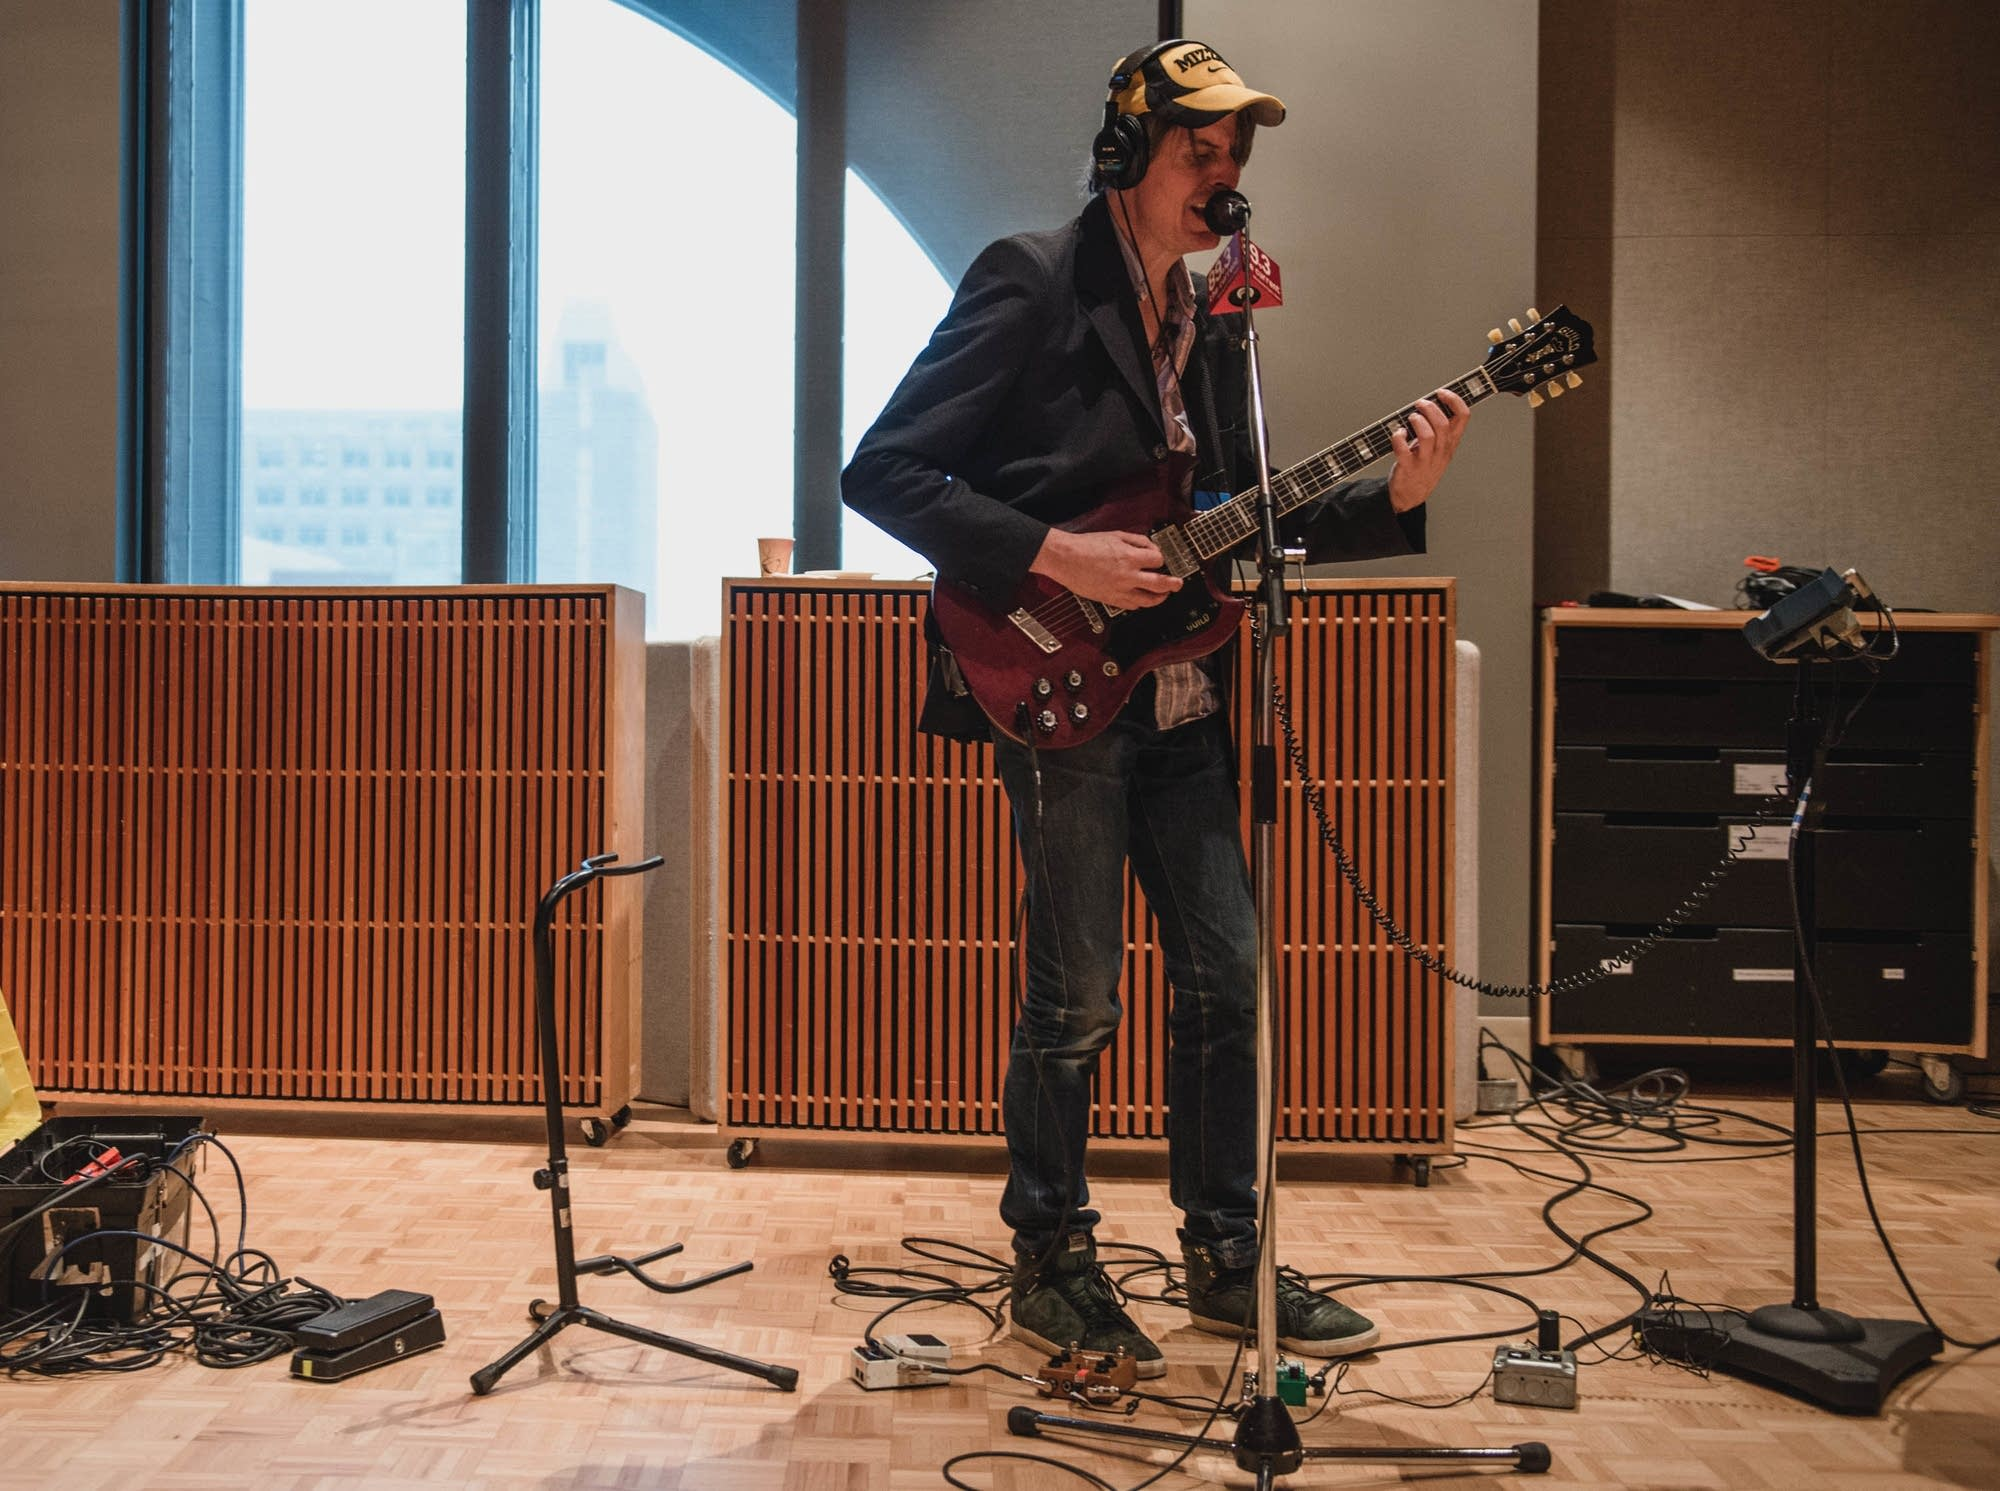 stephen malkmus in studio singing guitar